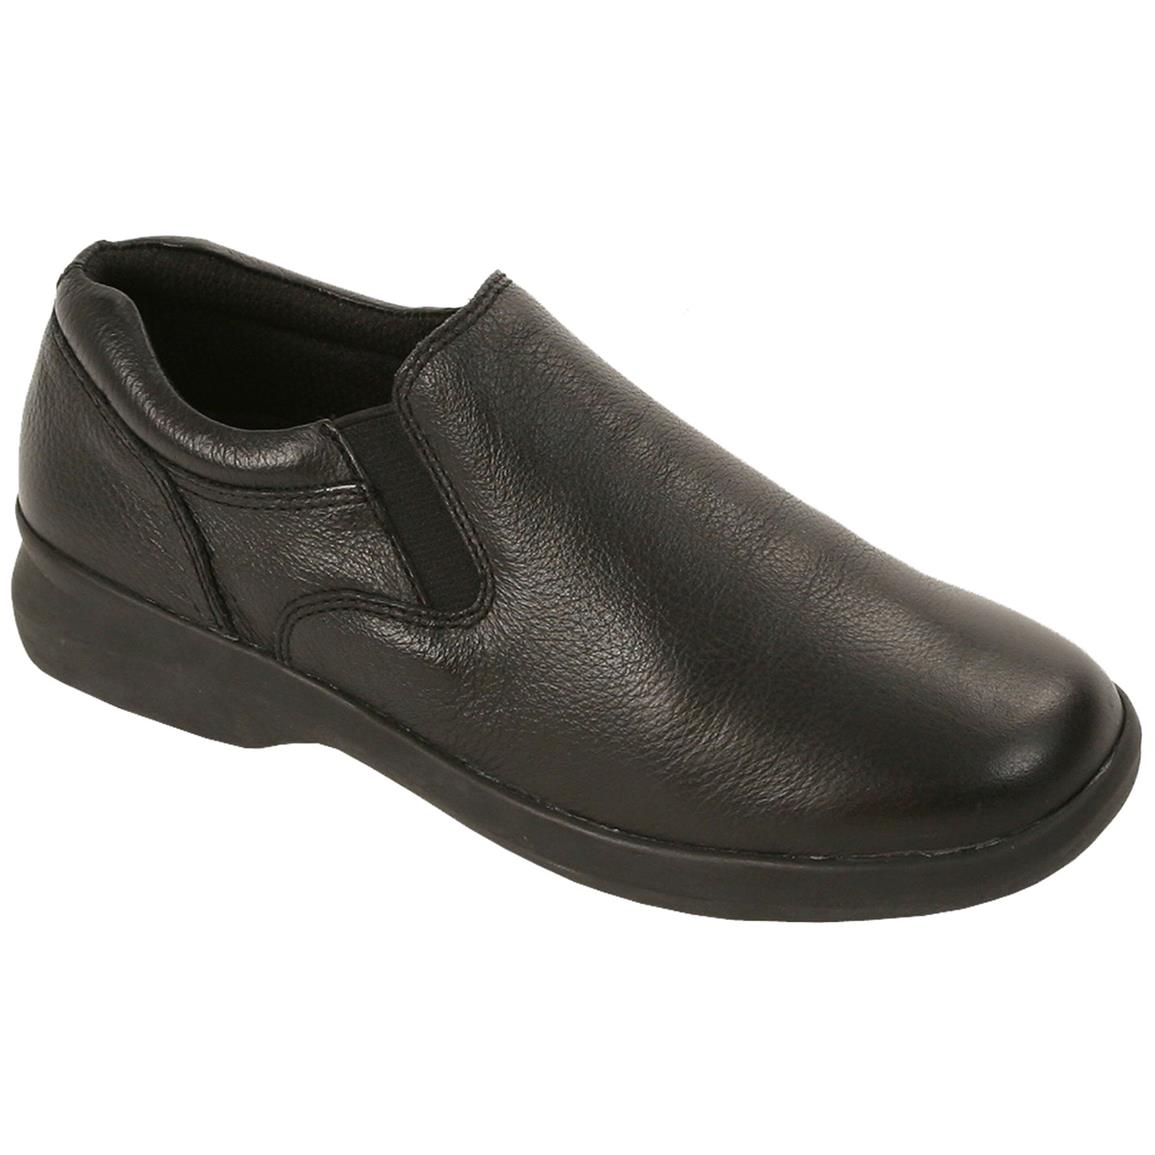 Women's Deer Stags® Ruth Slip-on Shoes